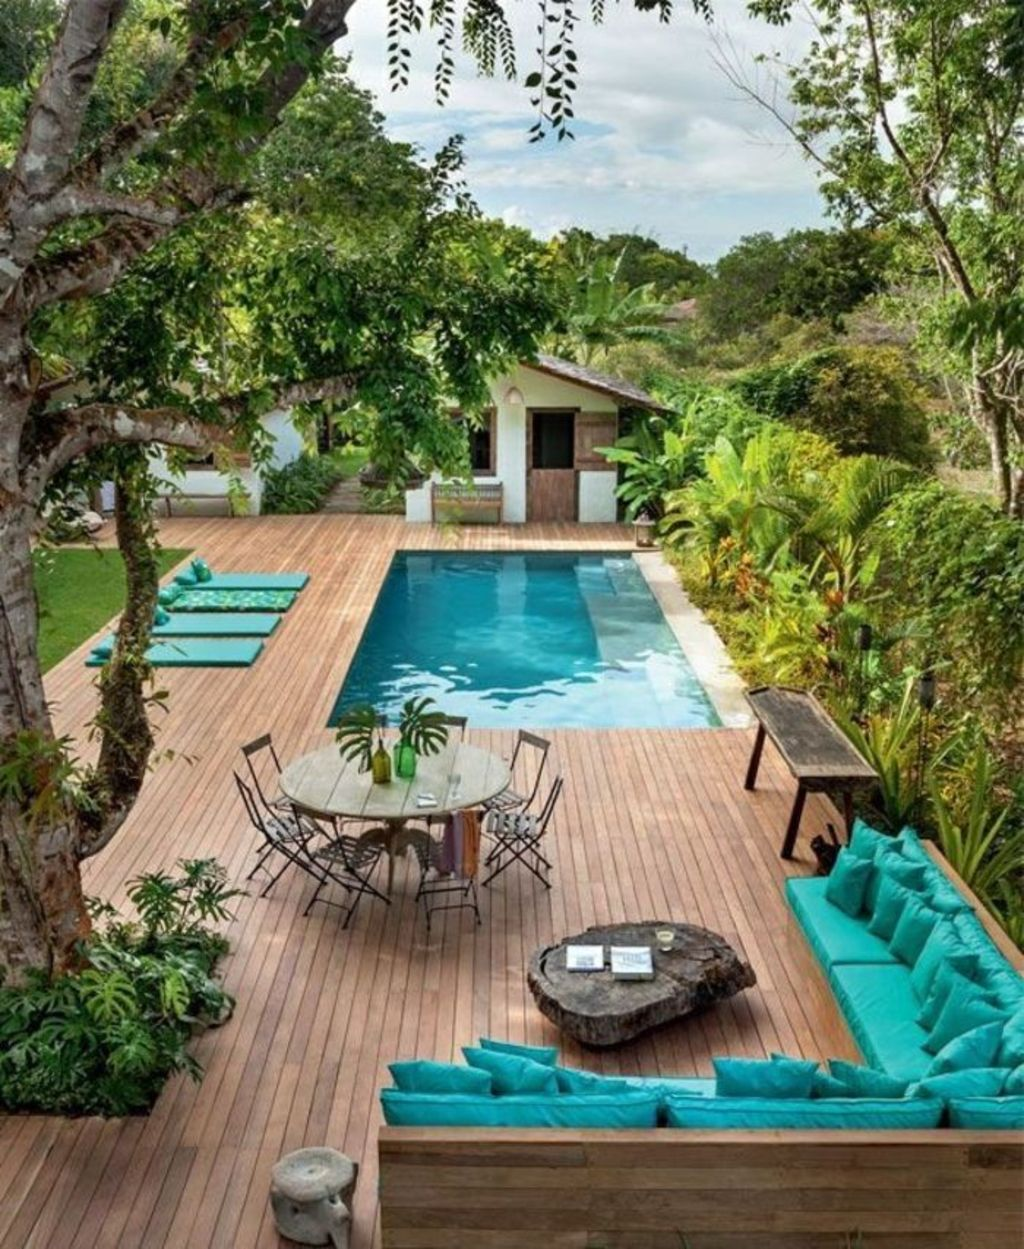 Small swimming pools made for small spaces and tight budgets Part 35